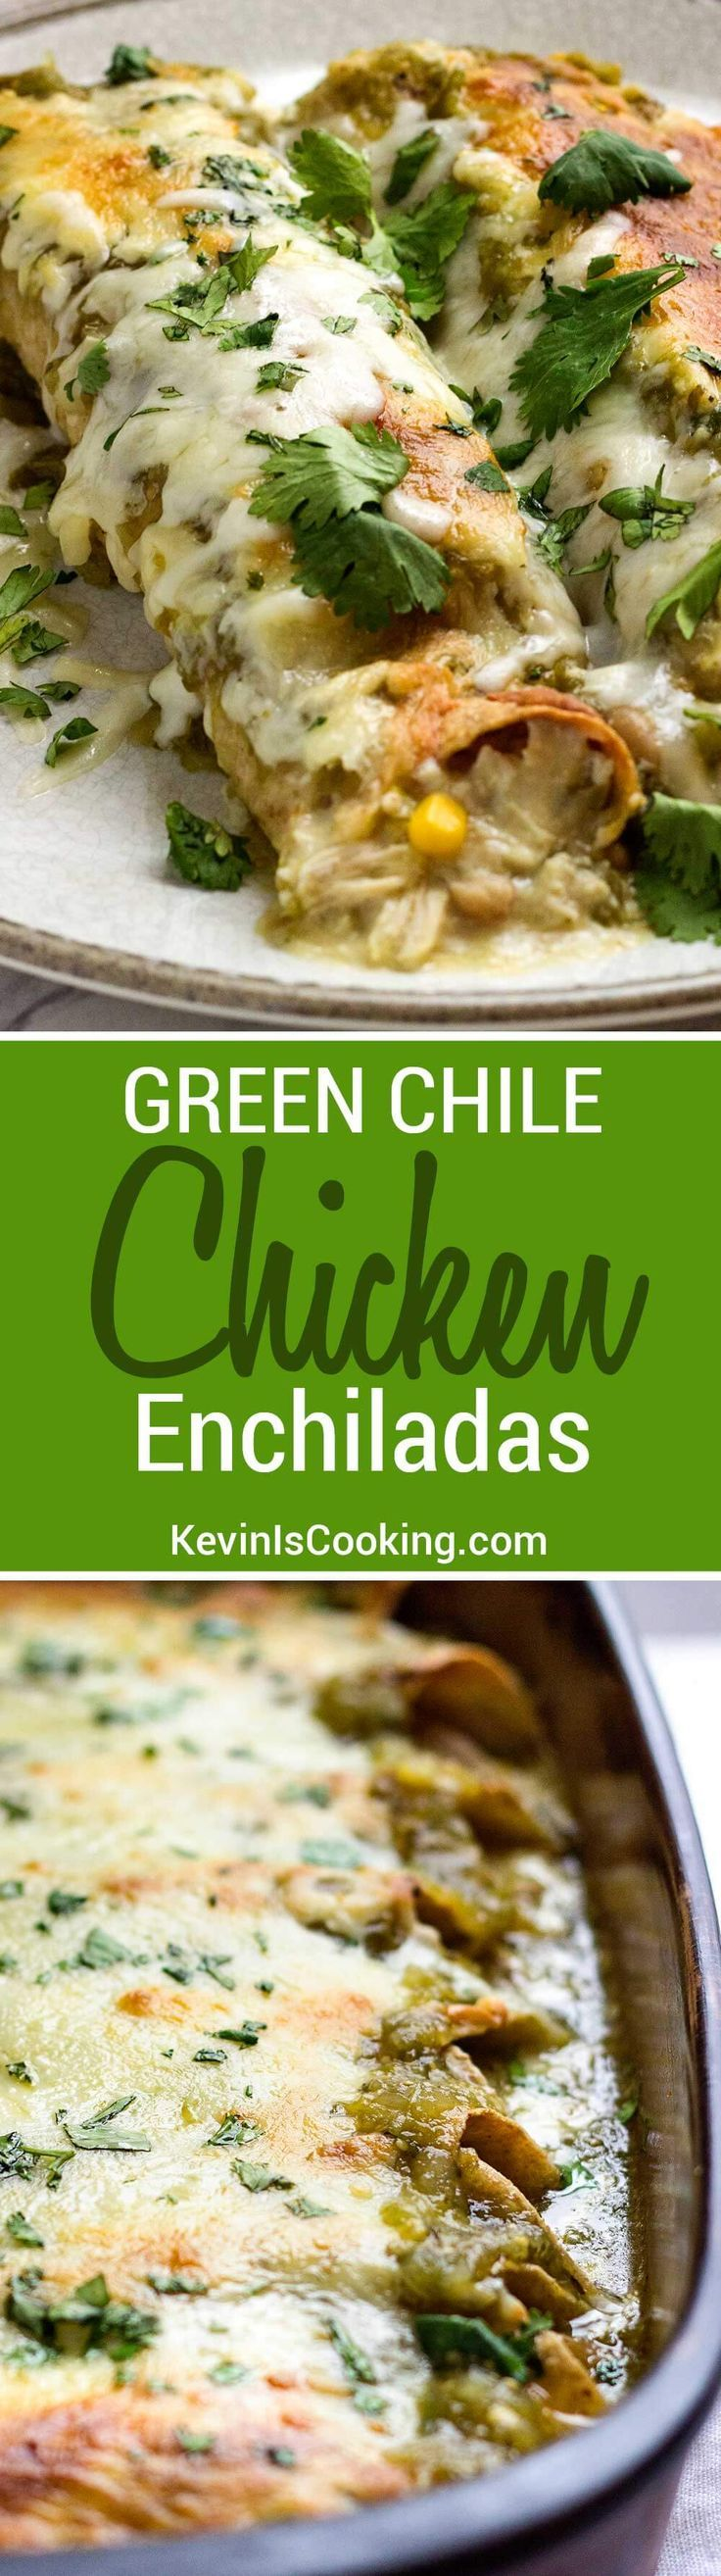 These Green Chile Chicken Enchiladas use shredded rotisserie chicken, white beans, corn and plenty of Pepper Jack cheese then are smothered in a green salsa verde. Super easy to put together and are great to freeze for later. via @KevinIsCooking